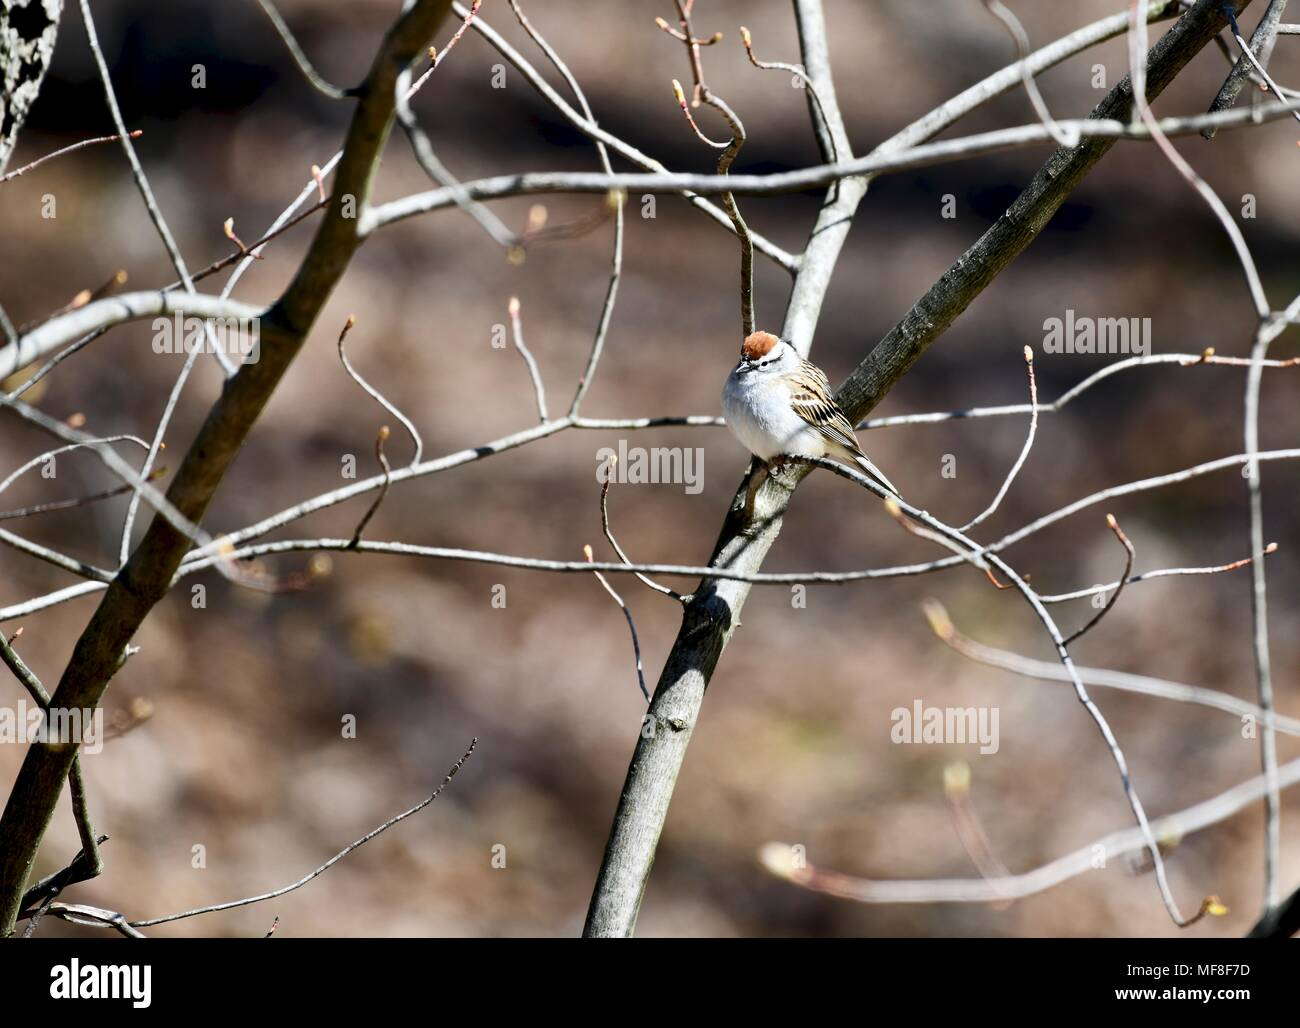 Chipping sparrow (Spizella passerina) perched in a tree - Stock Image